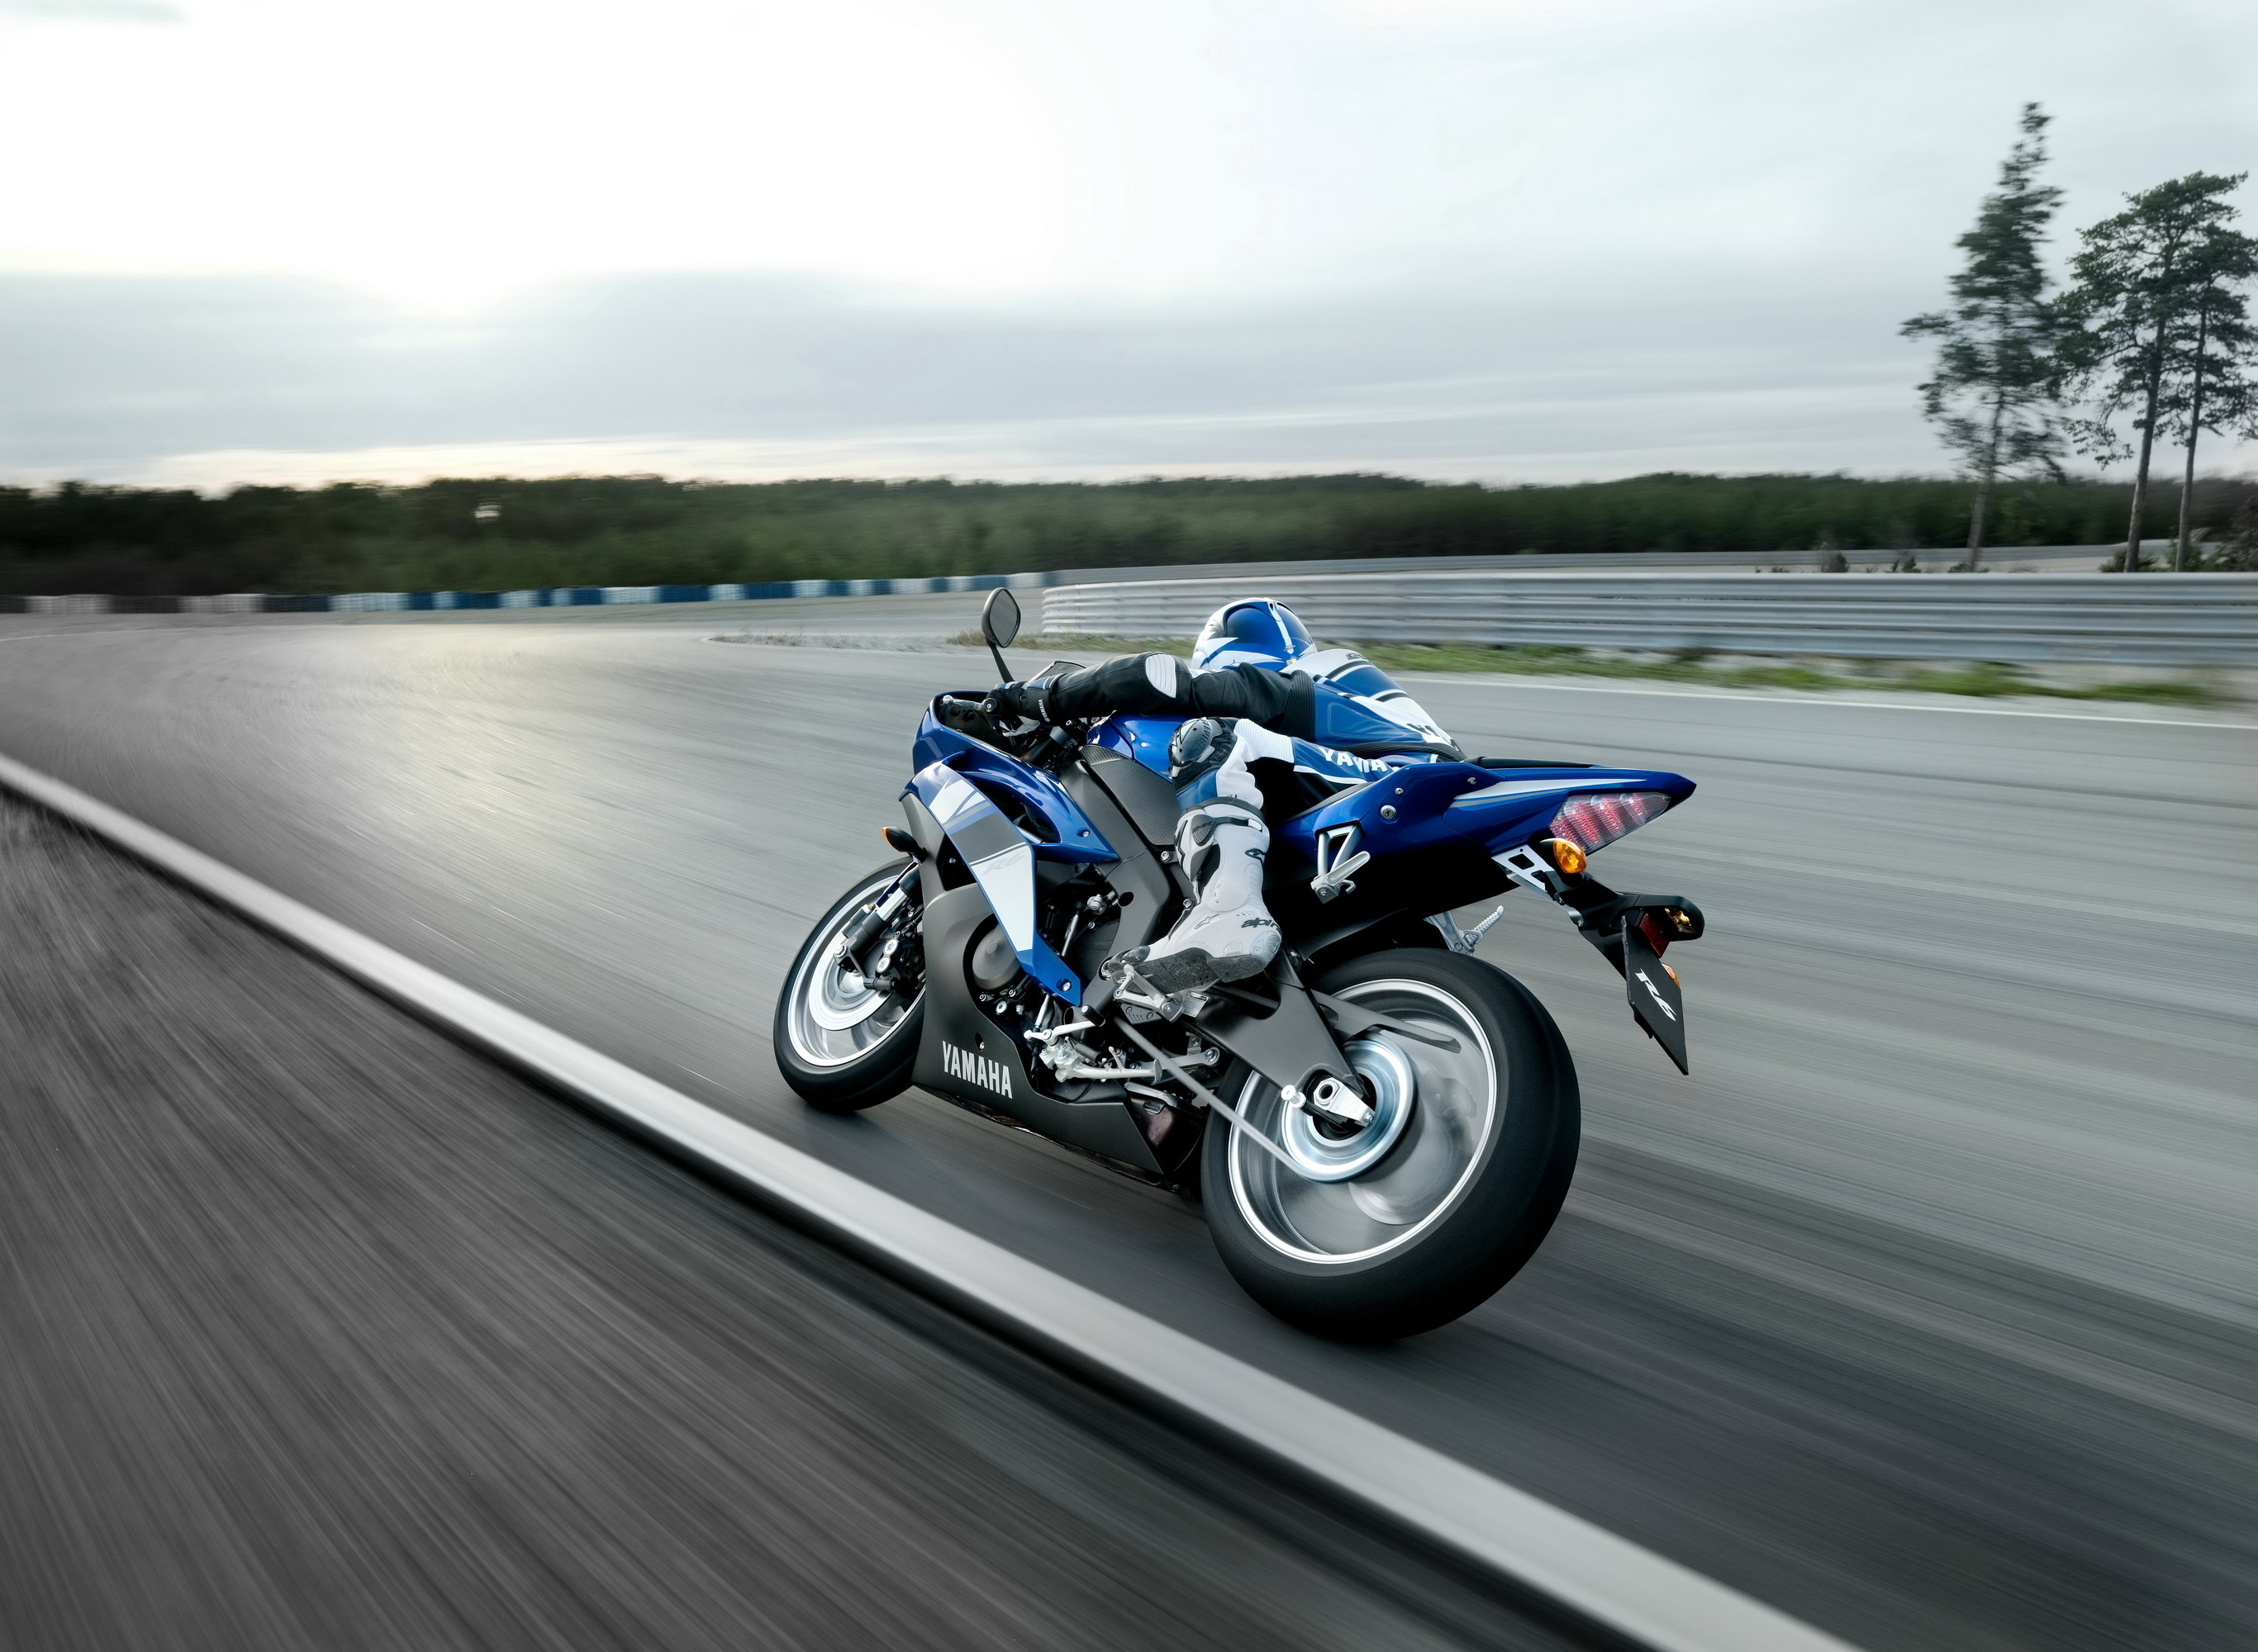 42 Motorcycle Racing HD Wallpapers | Background Images - Wallpaper ... for Motor Racing Wallpaper  83fiz